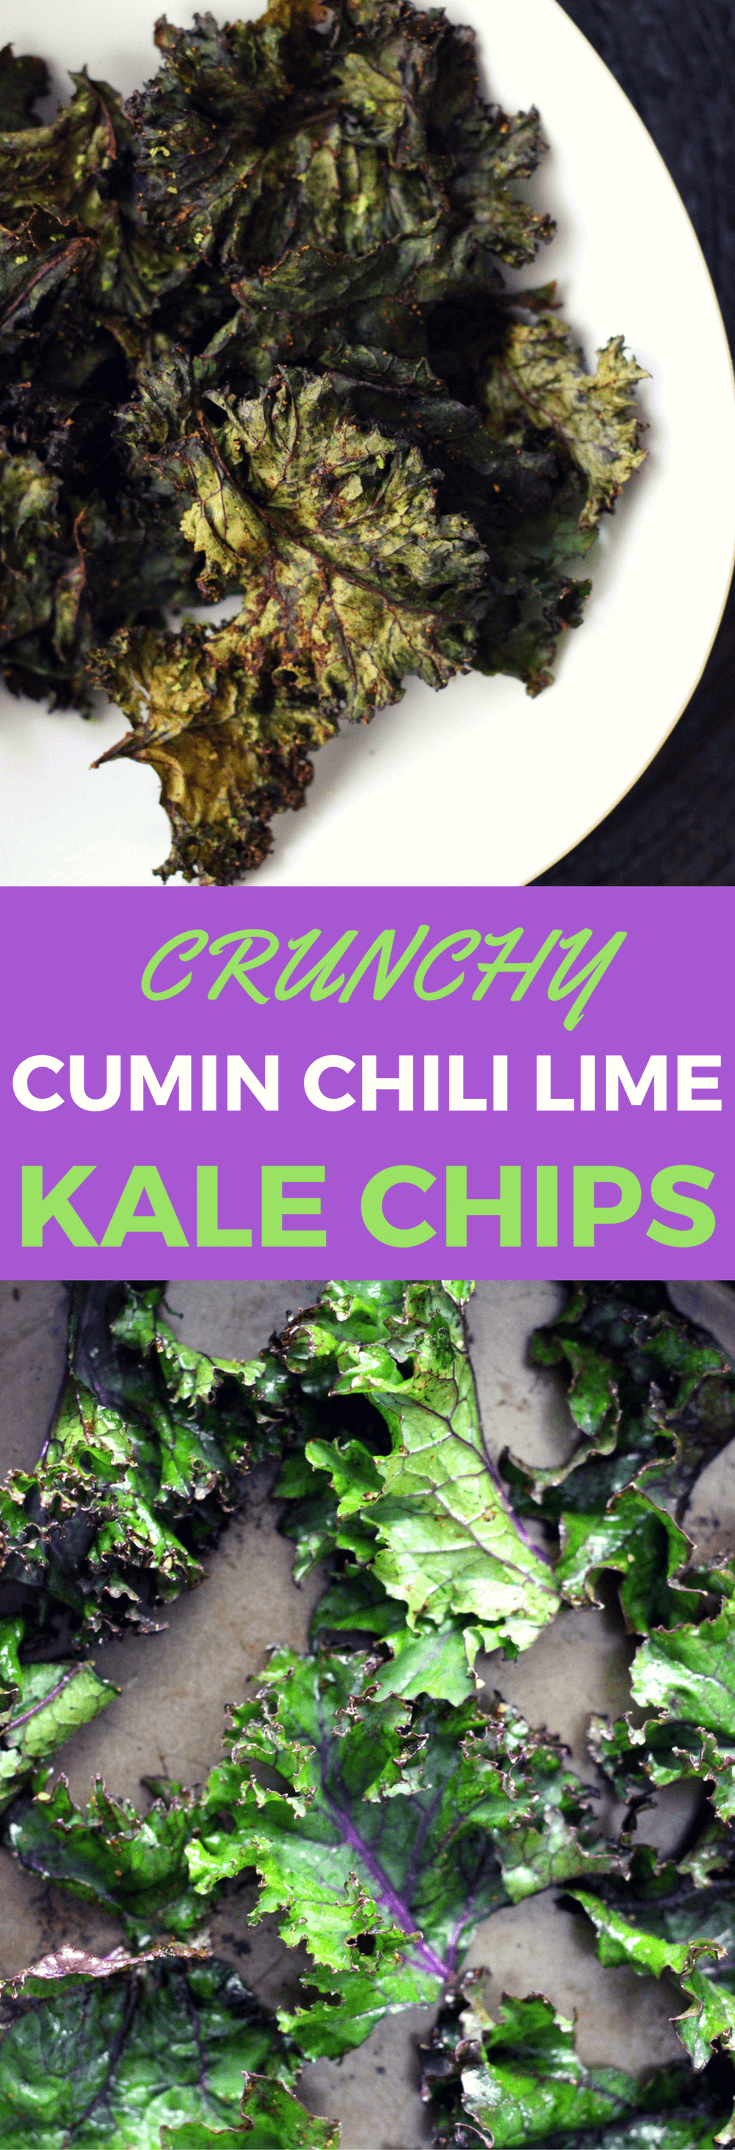 Easy healthy homemade baked kale chips recipe using fat burning spices - cumin, chili and lime. With step-by-step instruction on how to make the best kale chips with seasoning that provide crunchy, spicy flavors. Low calories snack, gluten free, paleo.